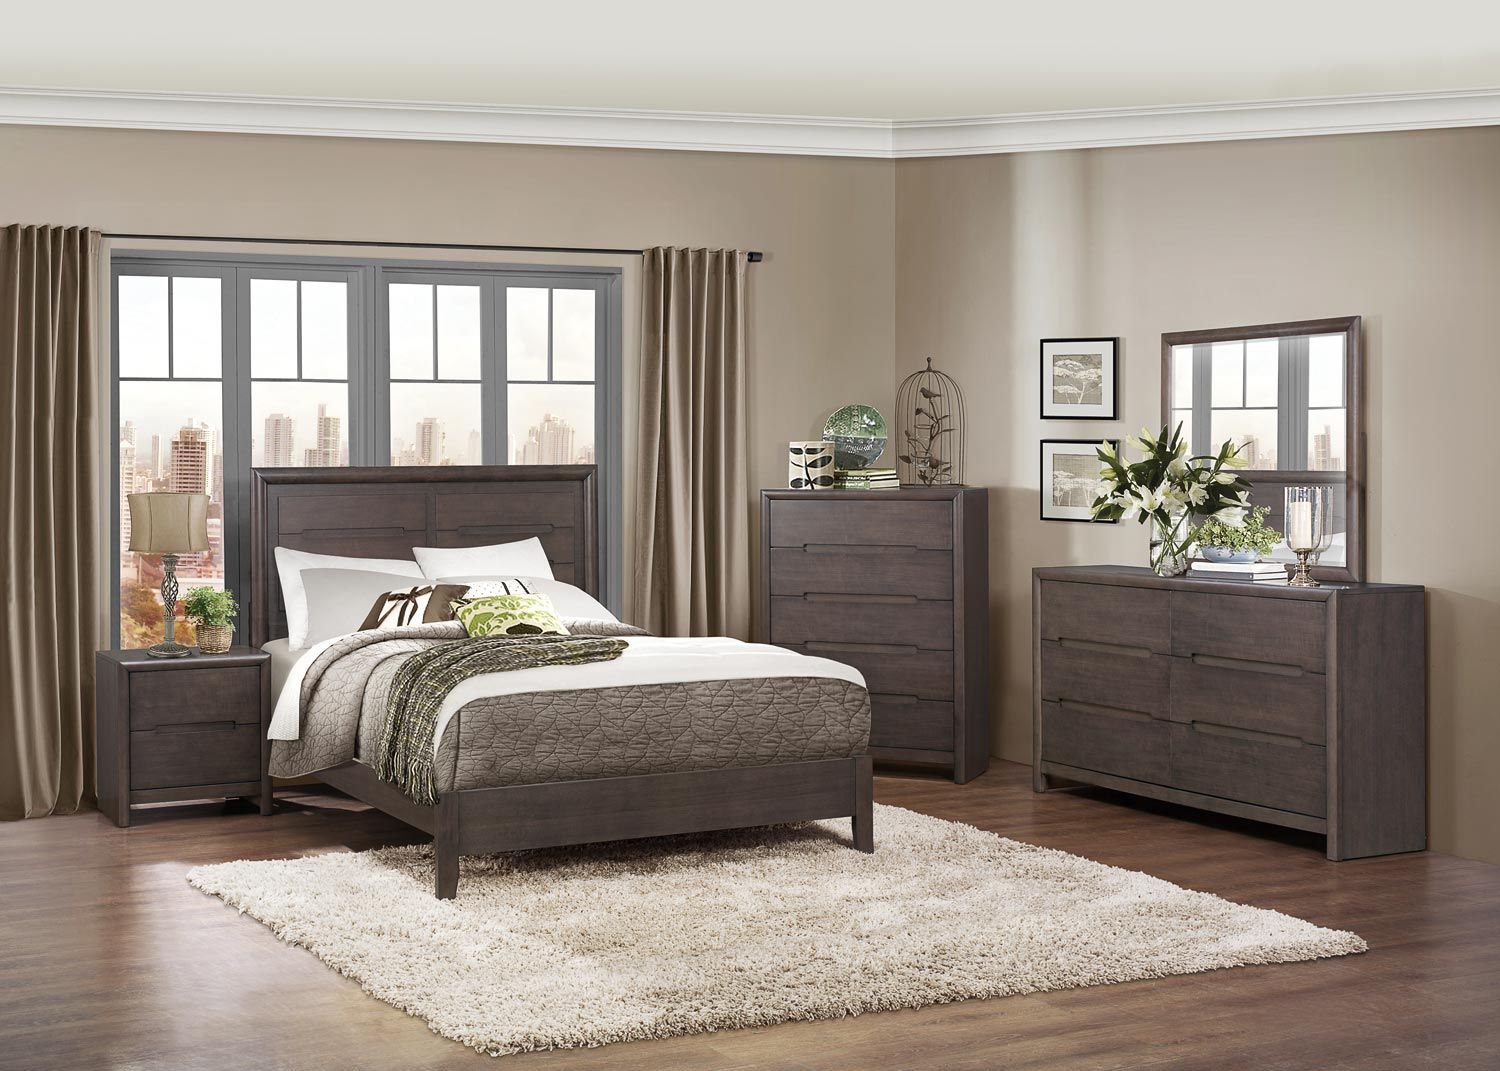 bedroom furniture sets dallas tx - King Bedroom Sets Dallas